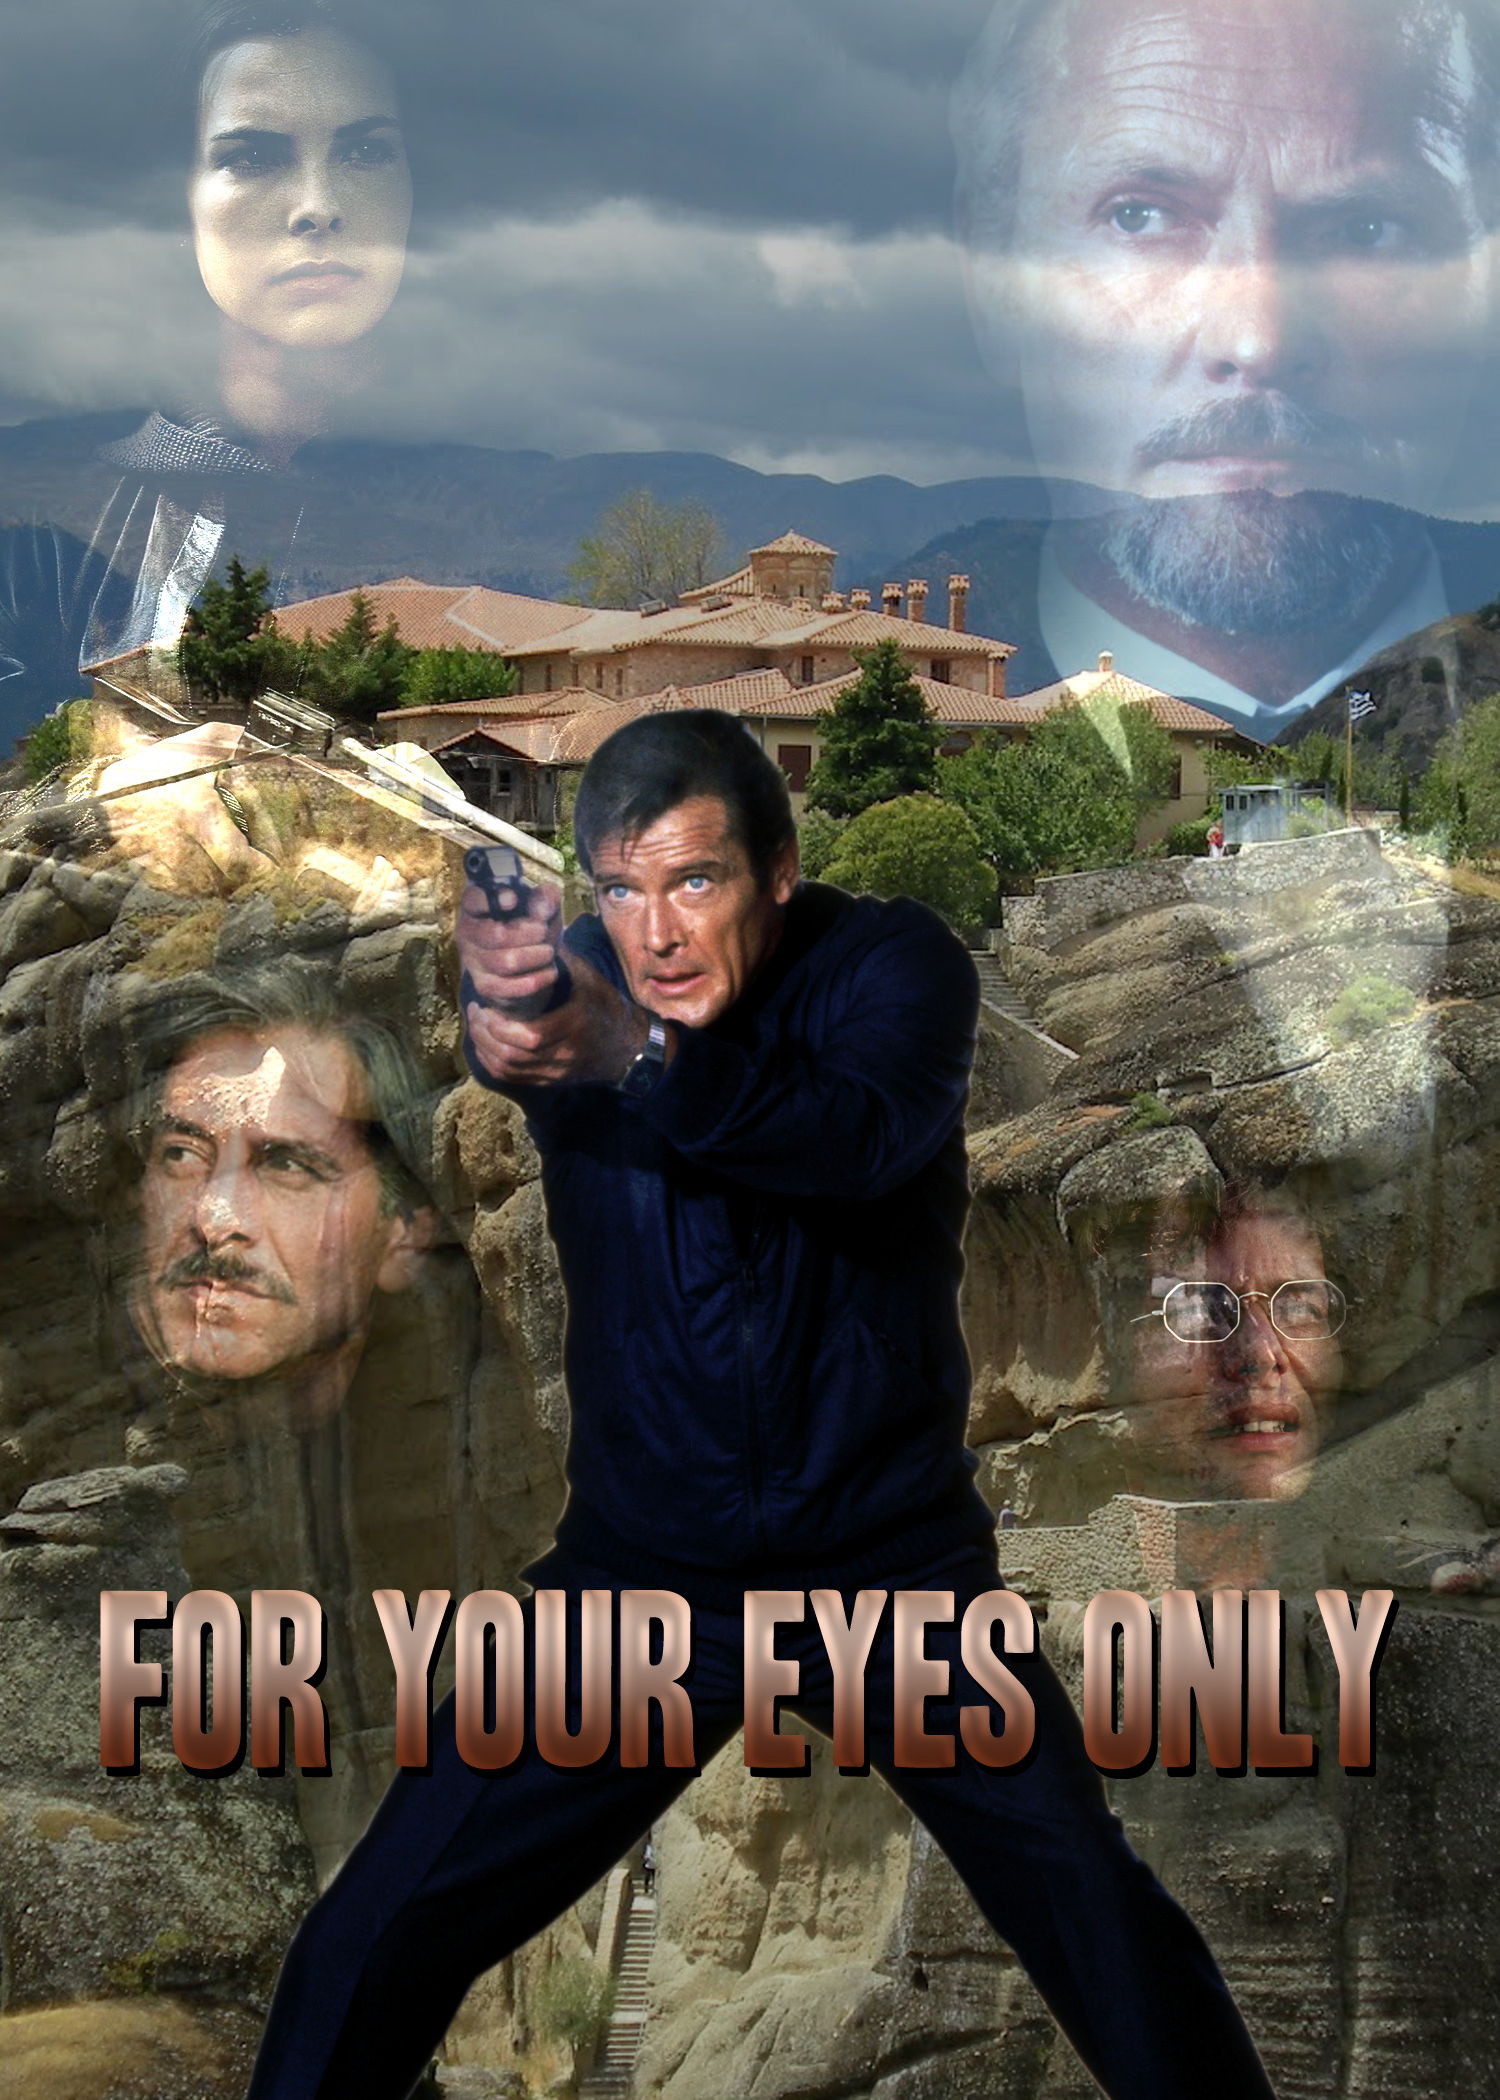 for_your_eyes_only_poster_by_comandercool22-d68c8c7.jpg